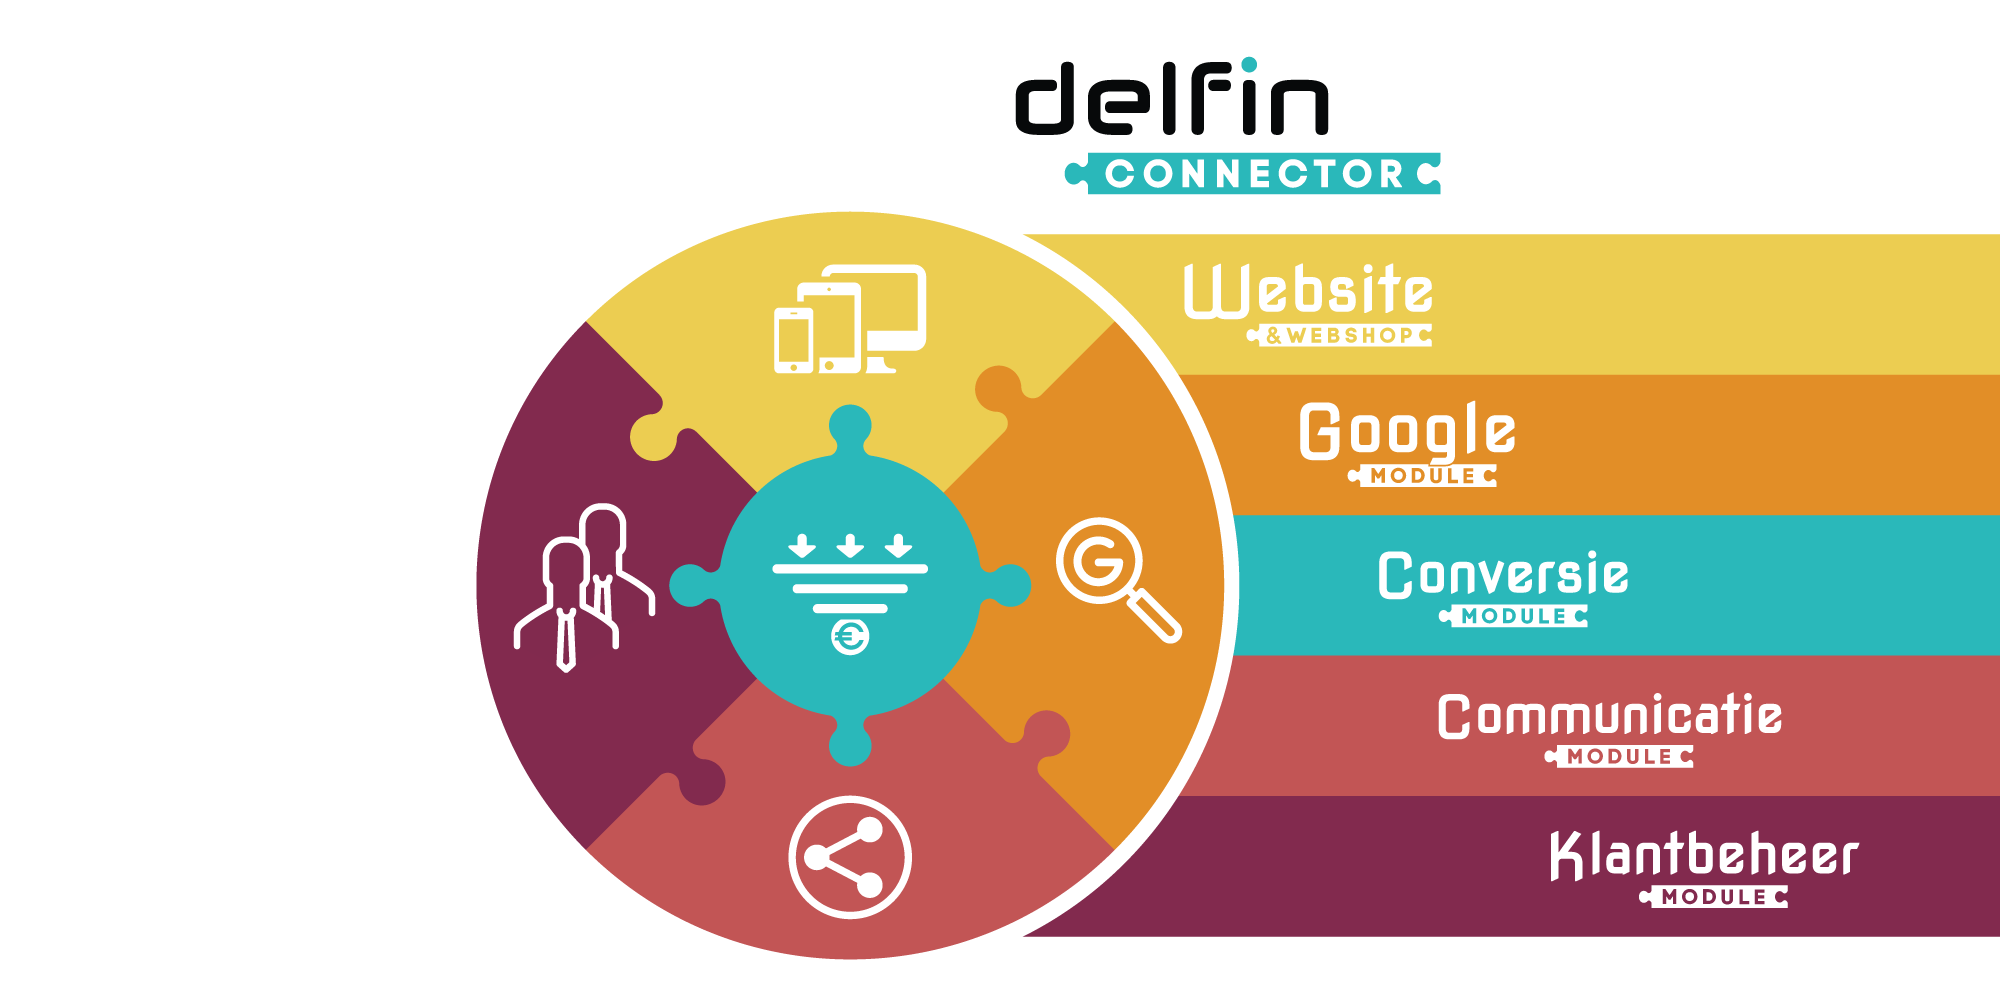 Hootsuite alternative - delfin-connector